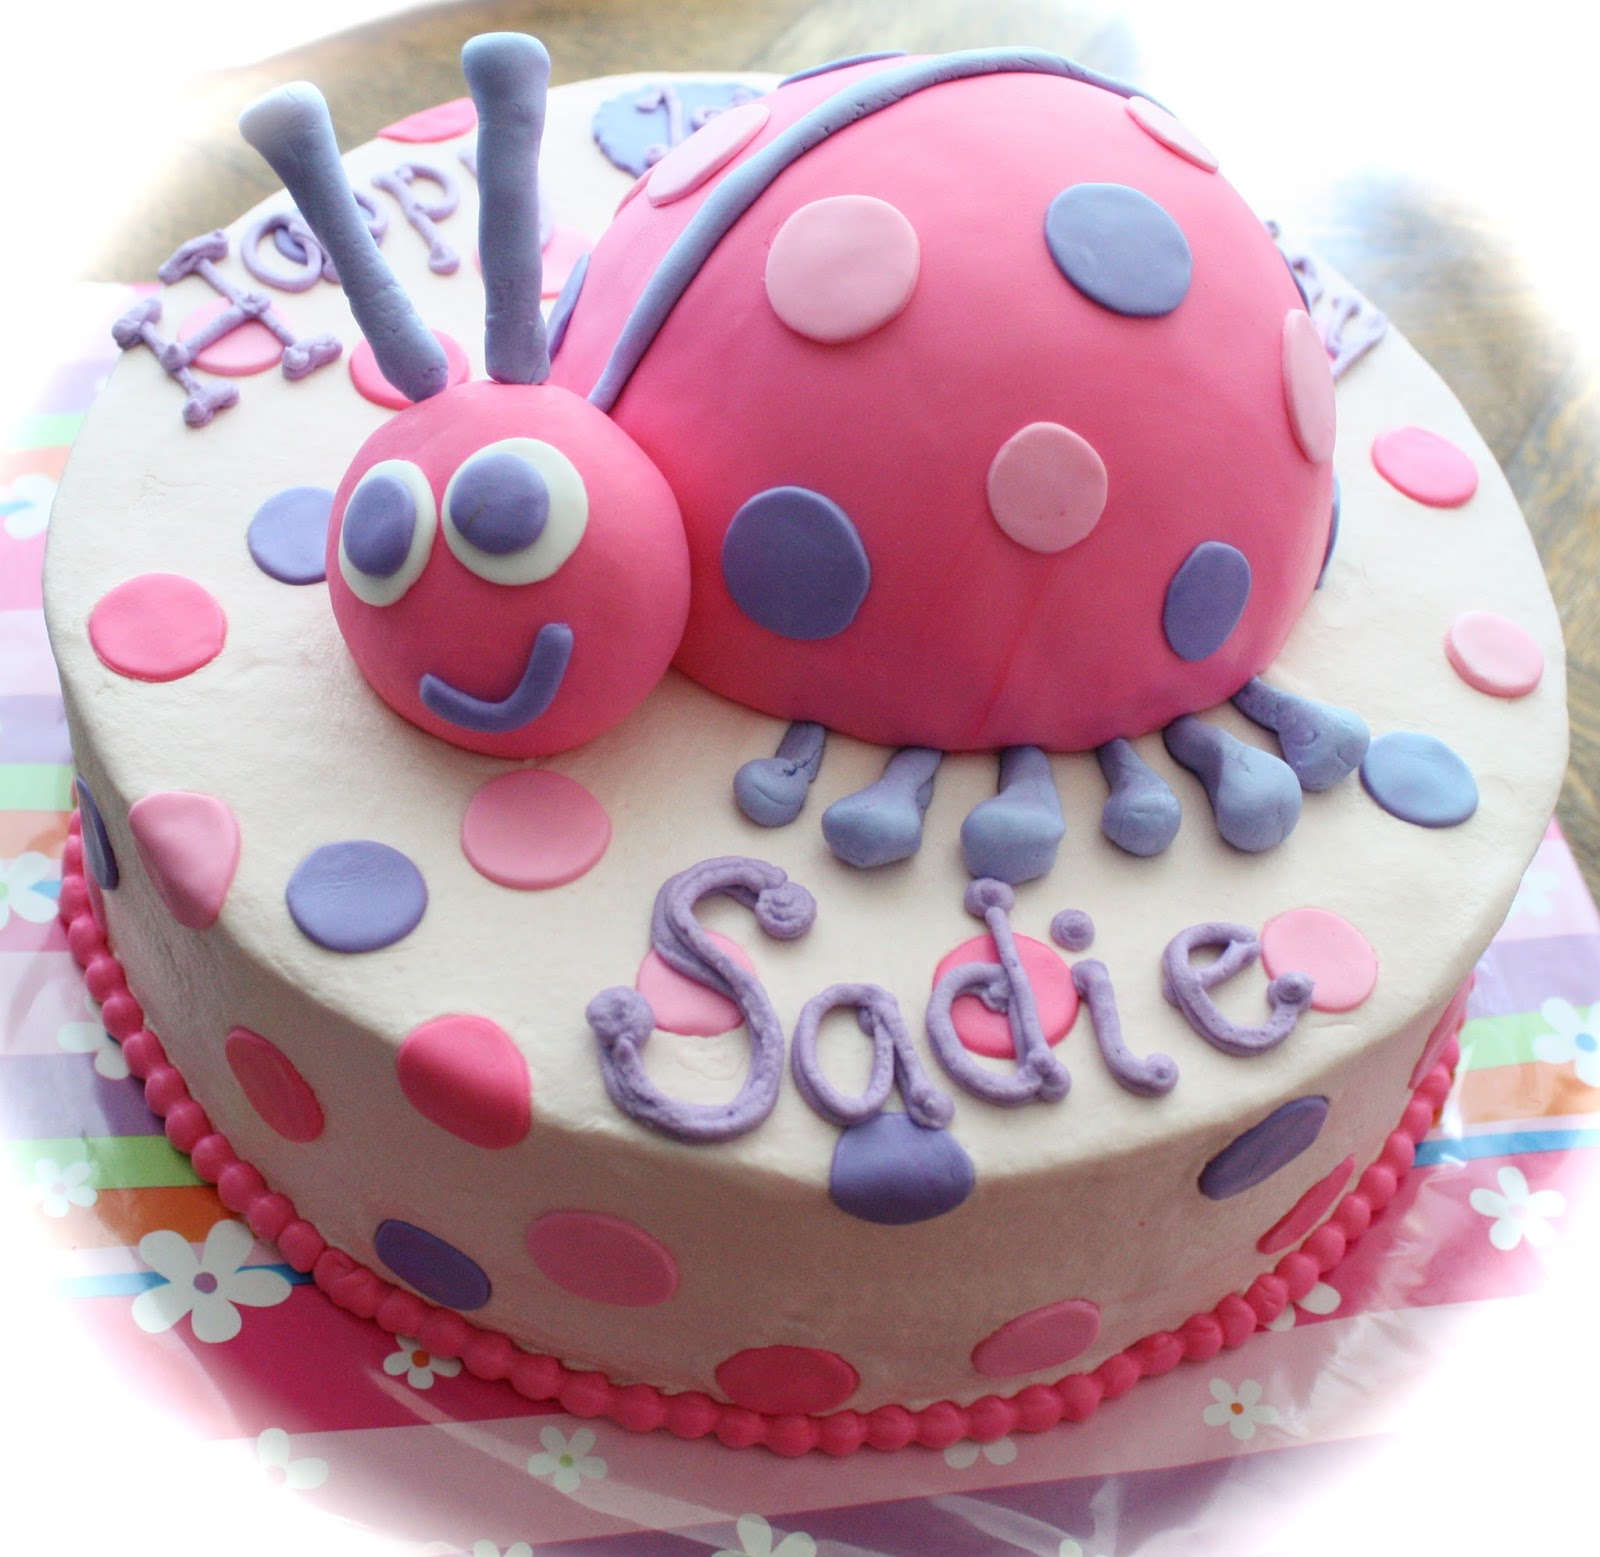 The Round Cake Is Lemon With Raspberry And Buttercream Filling Ladybug Yellow I Also Made A Coordinating Smash Happy 1st Birthday